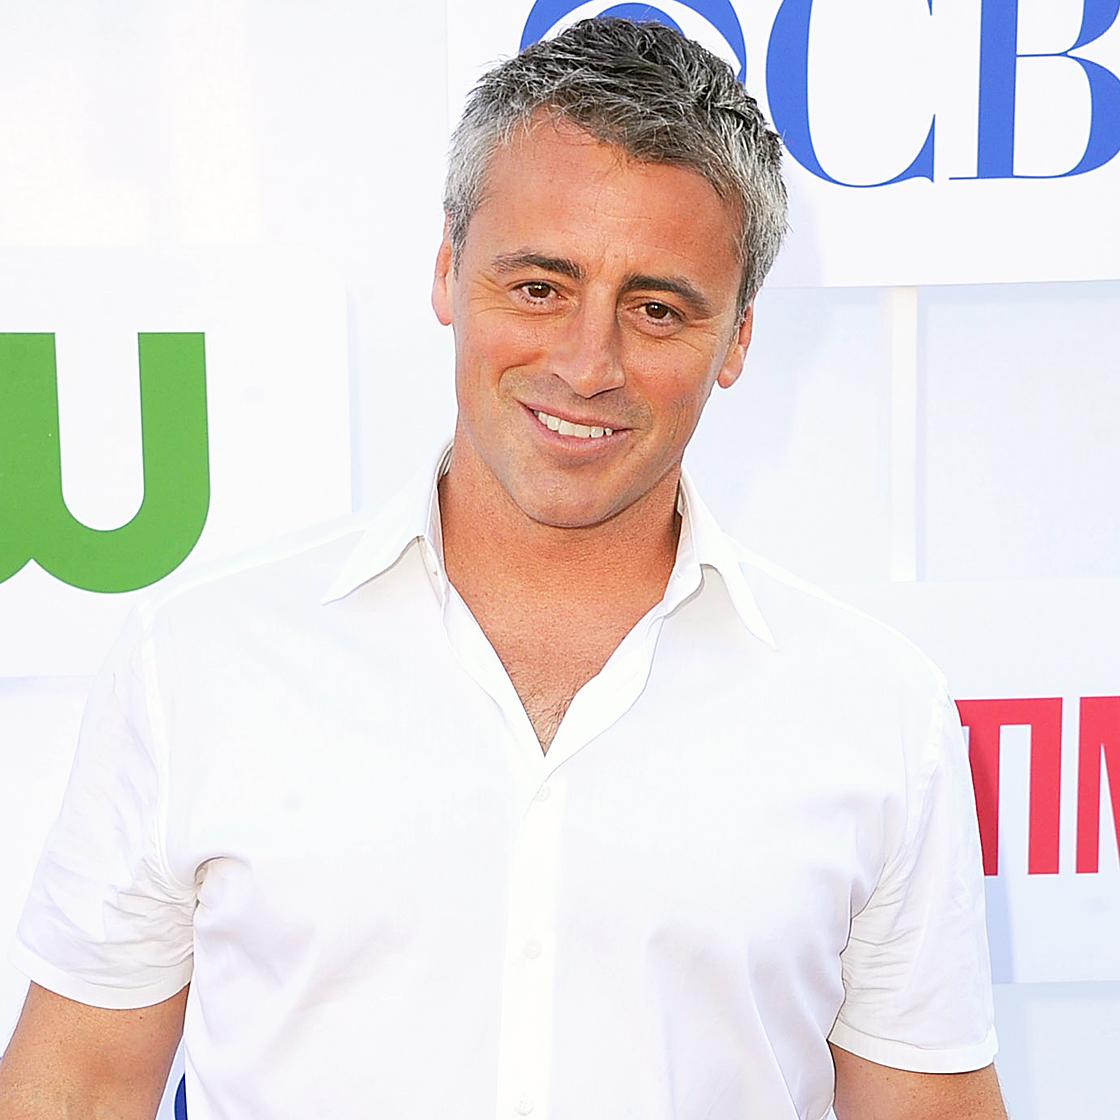 Post- Friends , LeBlanc focused his industry efforts behind the scenes. His production company, Fort Hill Productions, coproduced the 2006 made-for-TV movie The Prince .